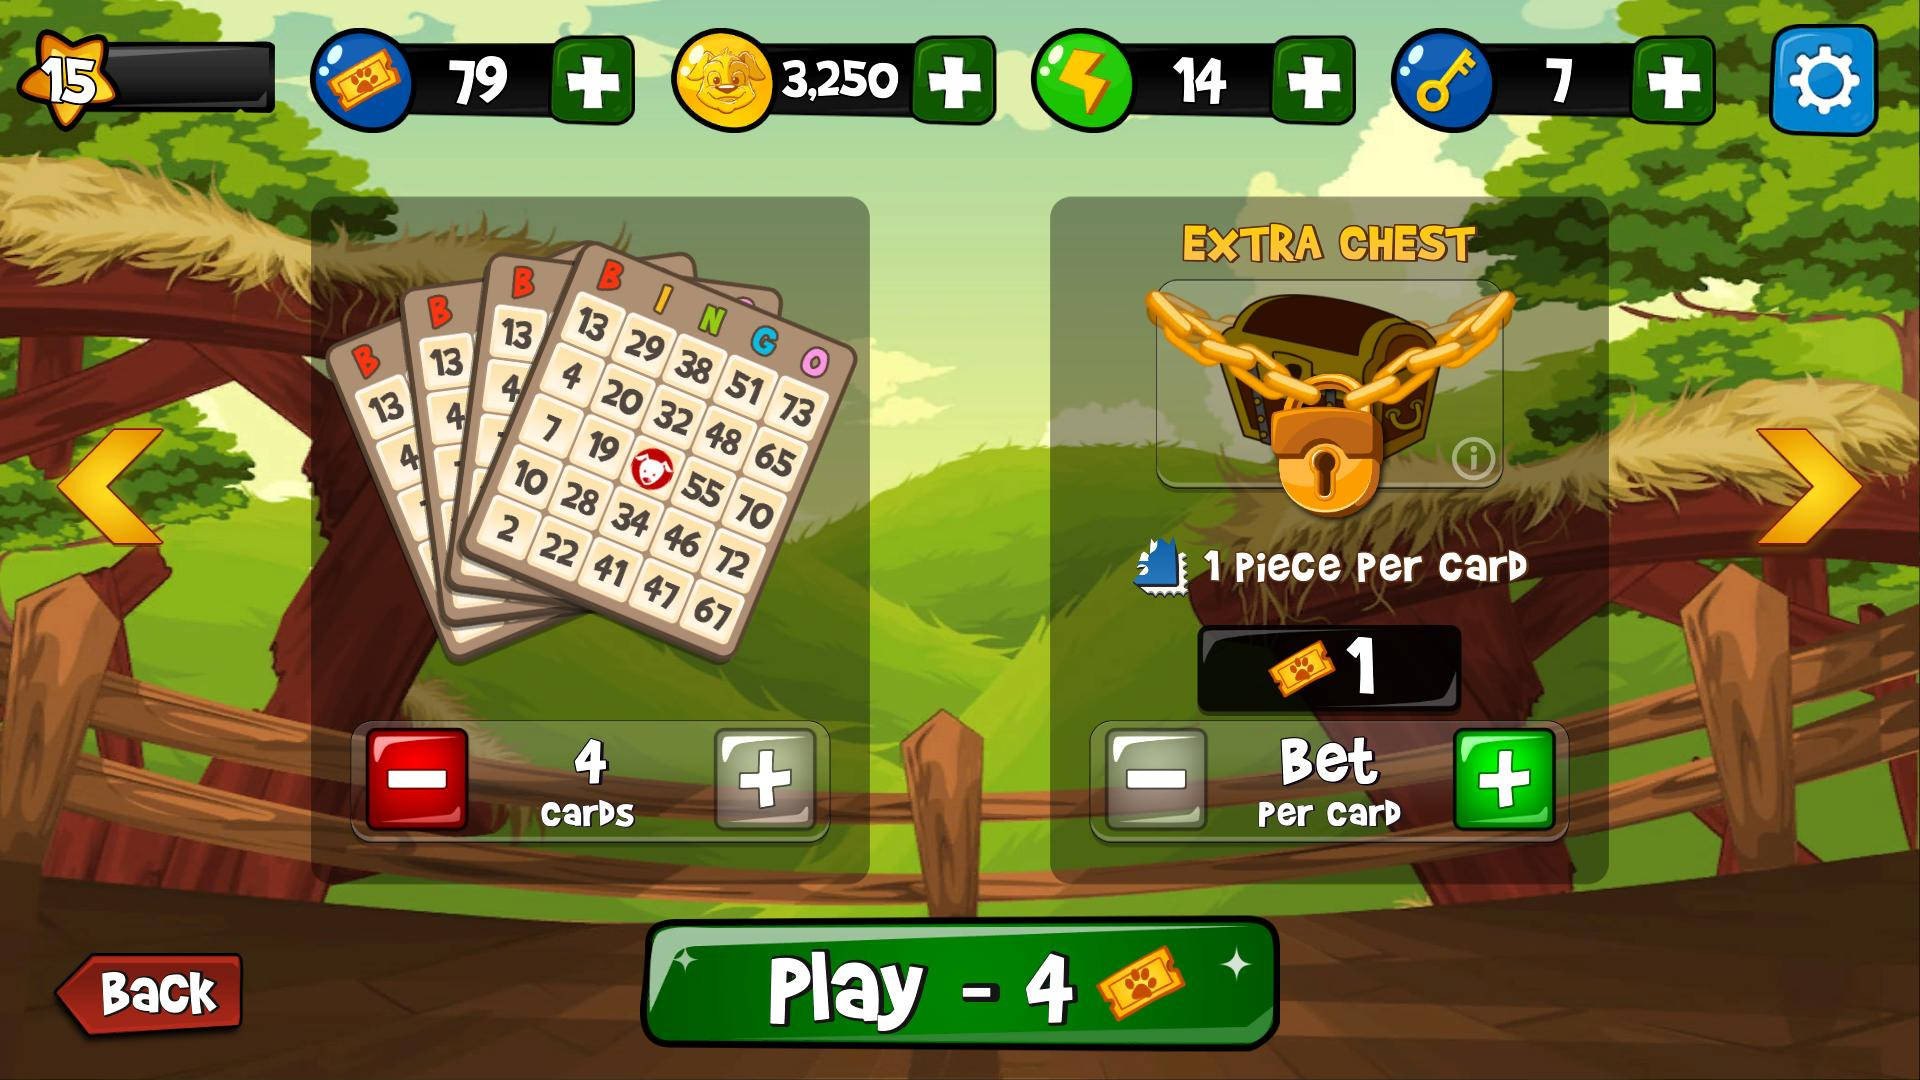 Bingo Abradoodle - Bingo Games Free to Play! 3.0.02 Screenshot 10